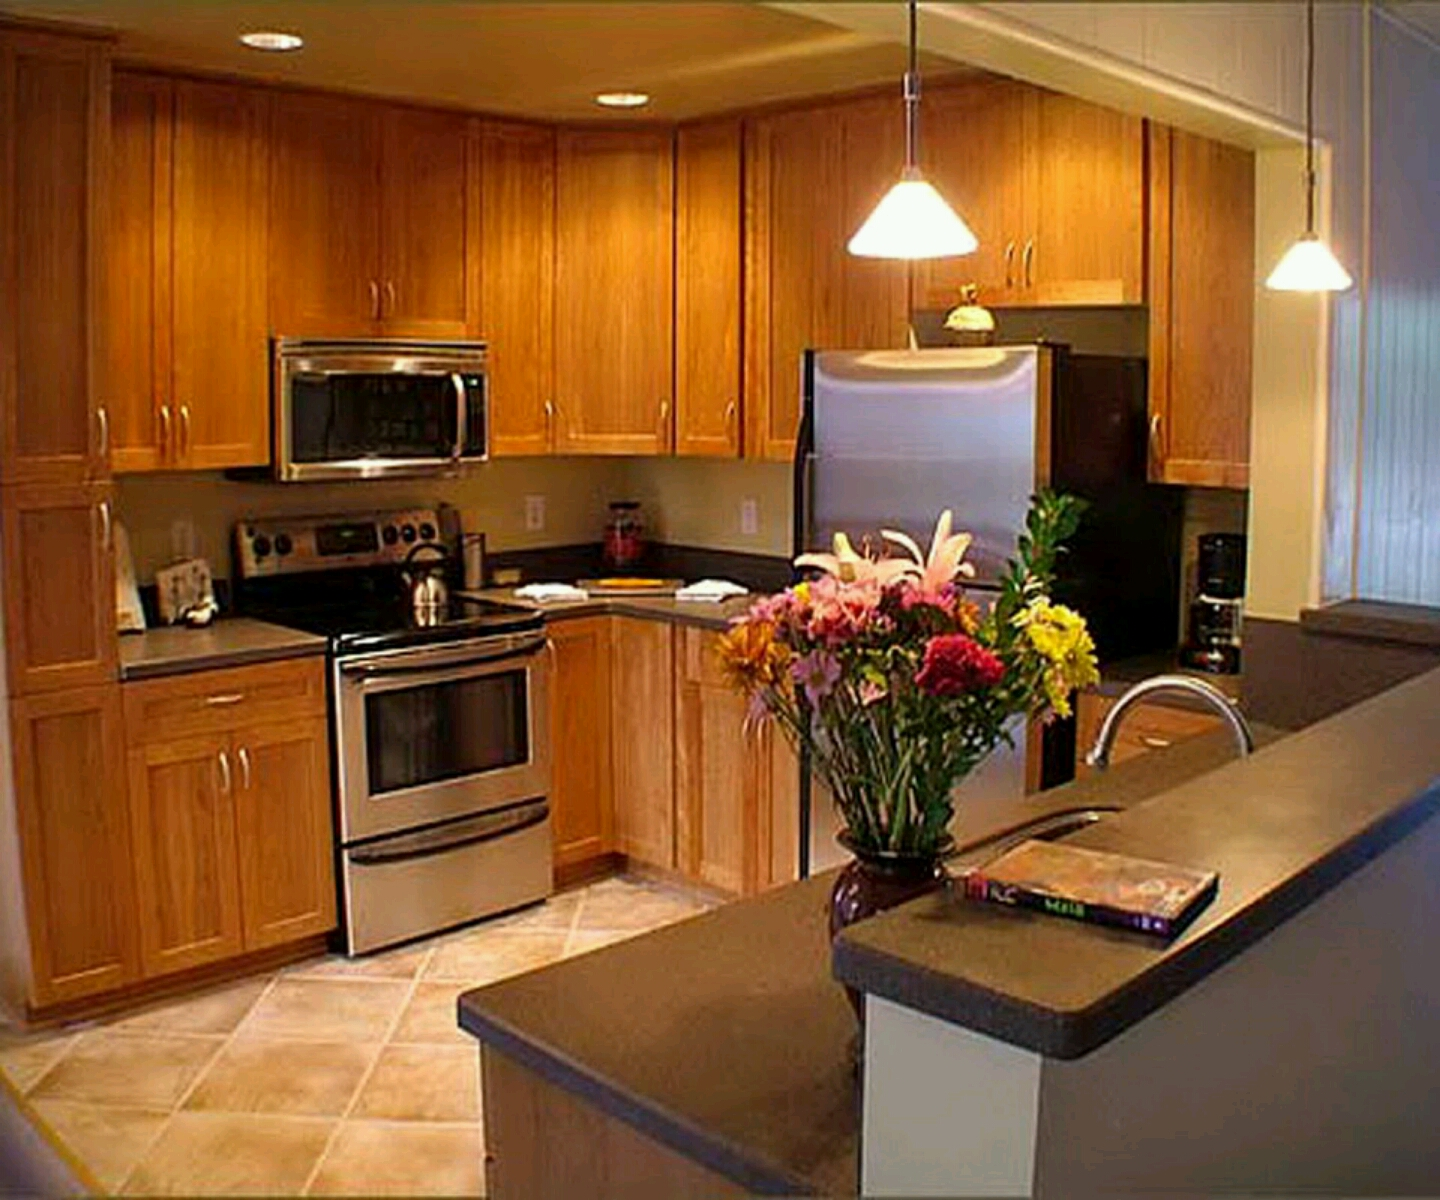 Contemporary wooden kitchen cabinets bill house plans for Wood kitchen cabinets